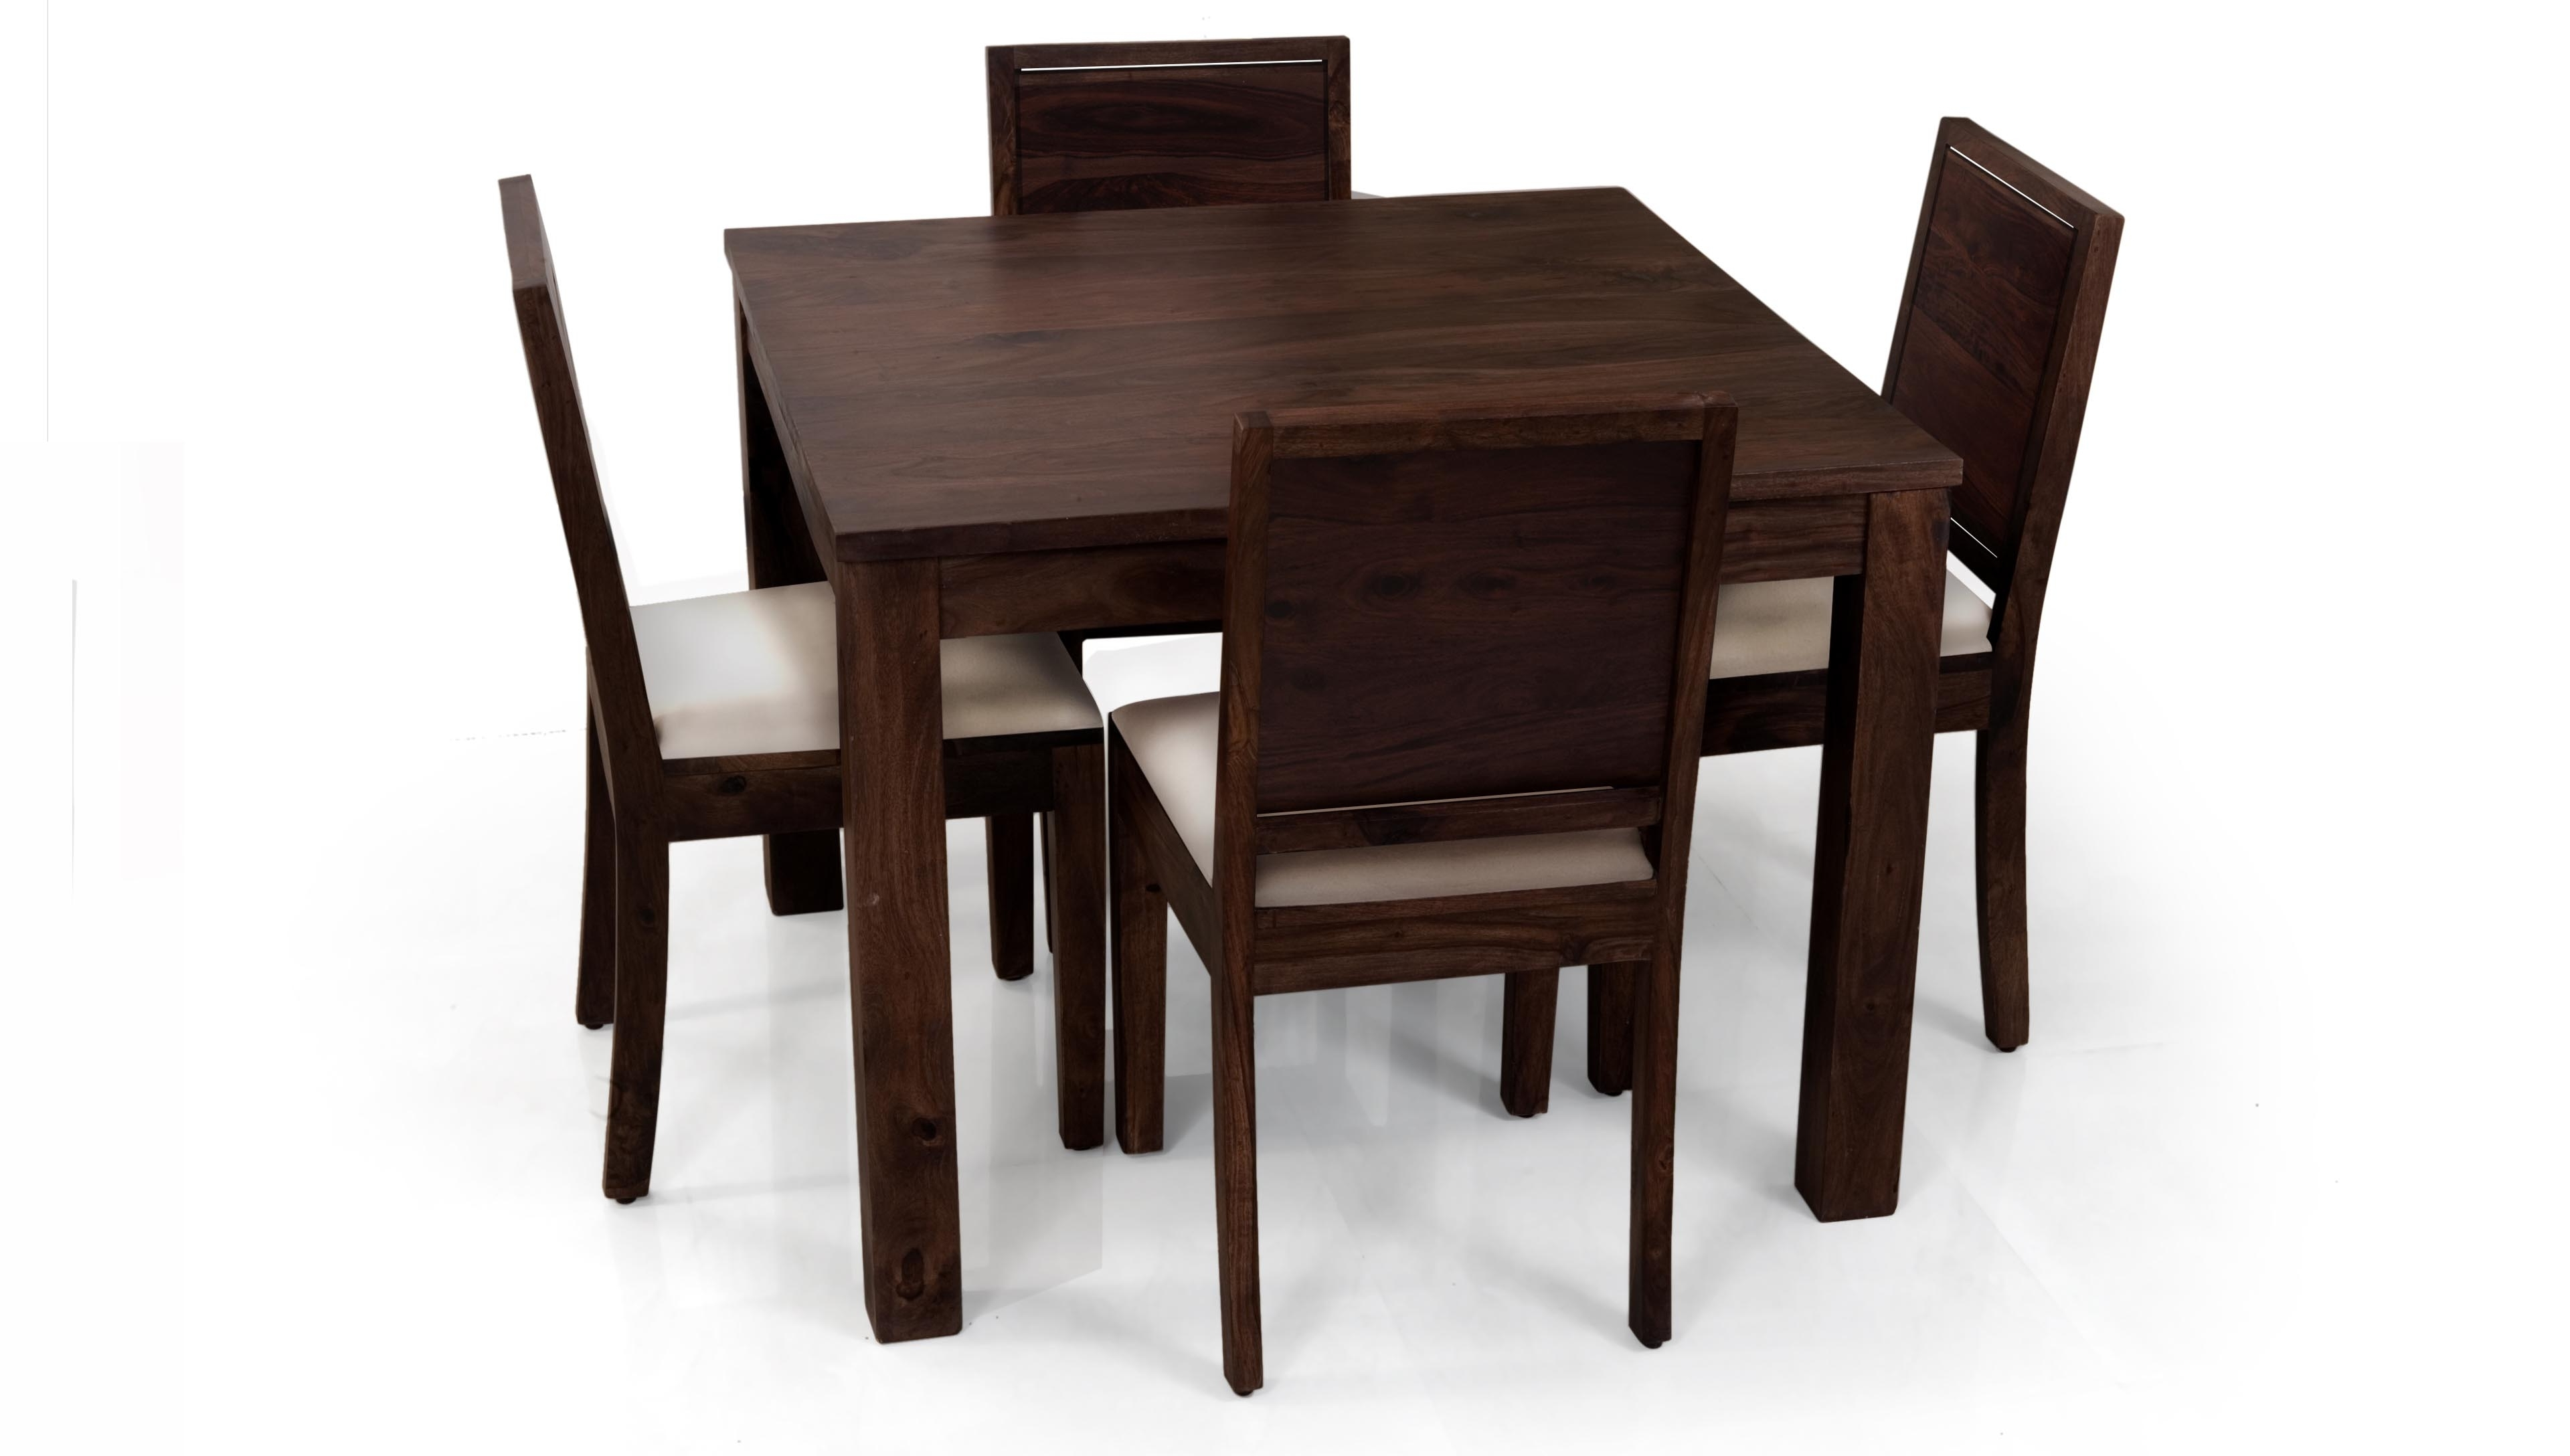 5 Piece Dining Table Set 4 Chairs Wood Kitchen Dinette Solid Oak Intended For Widely Used Small Dark Wood Dining Tables (Gallery 8 of 25)